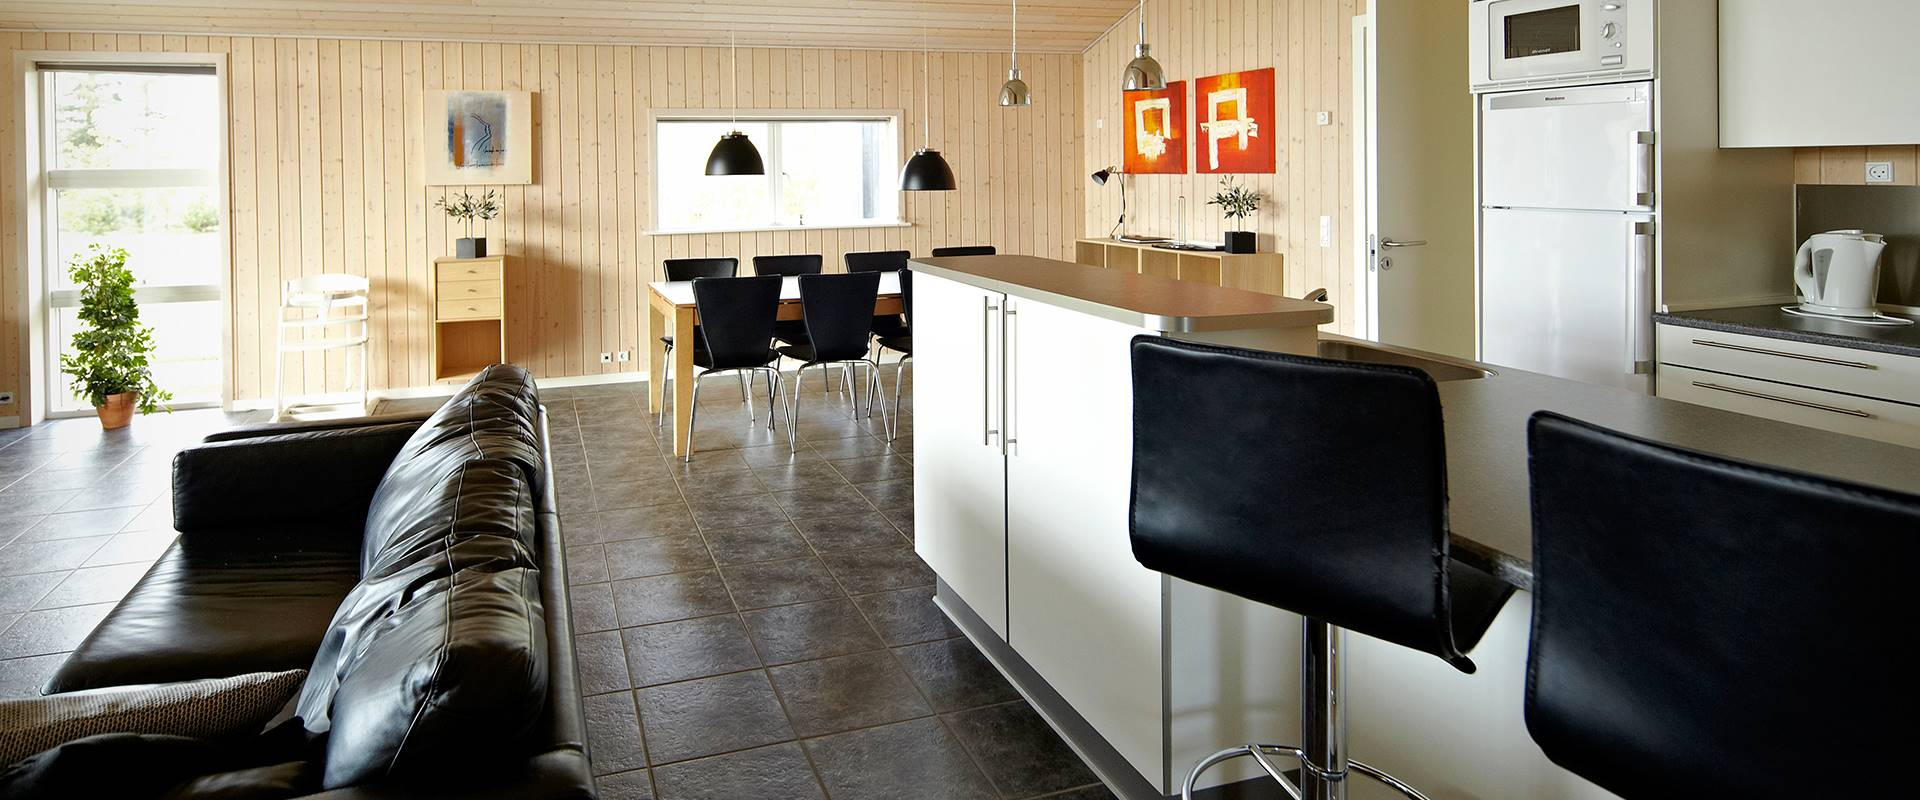 Classic Plus 8 holiday home Lalandia in Billund